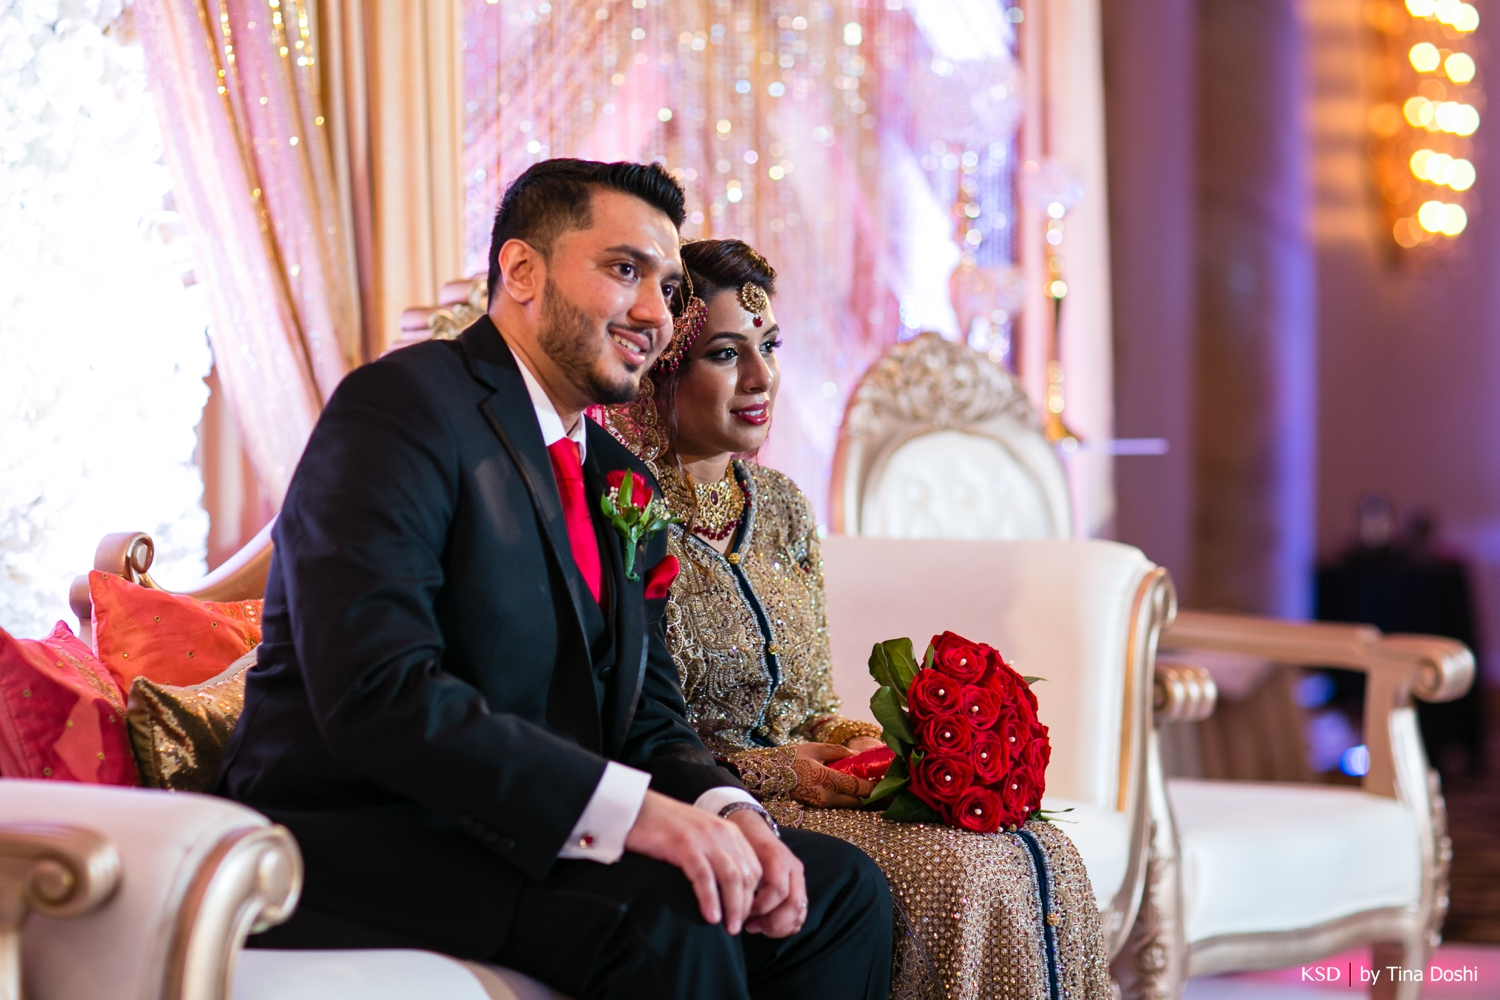 nj_south_asian_wedding_0123